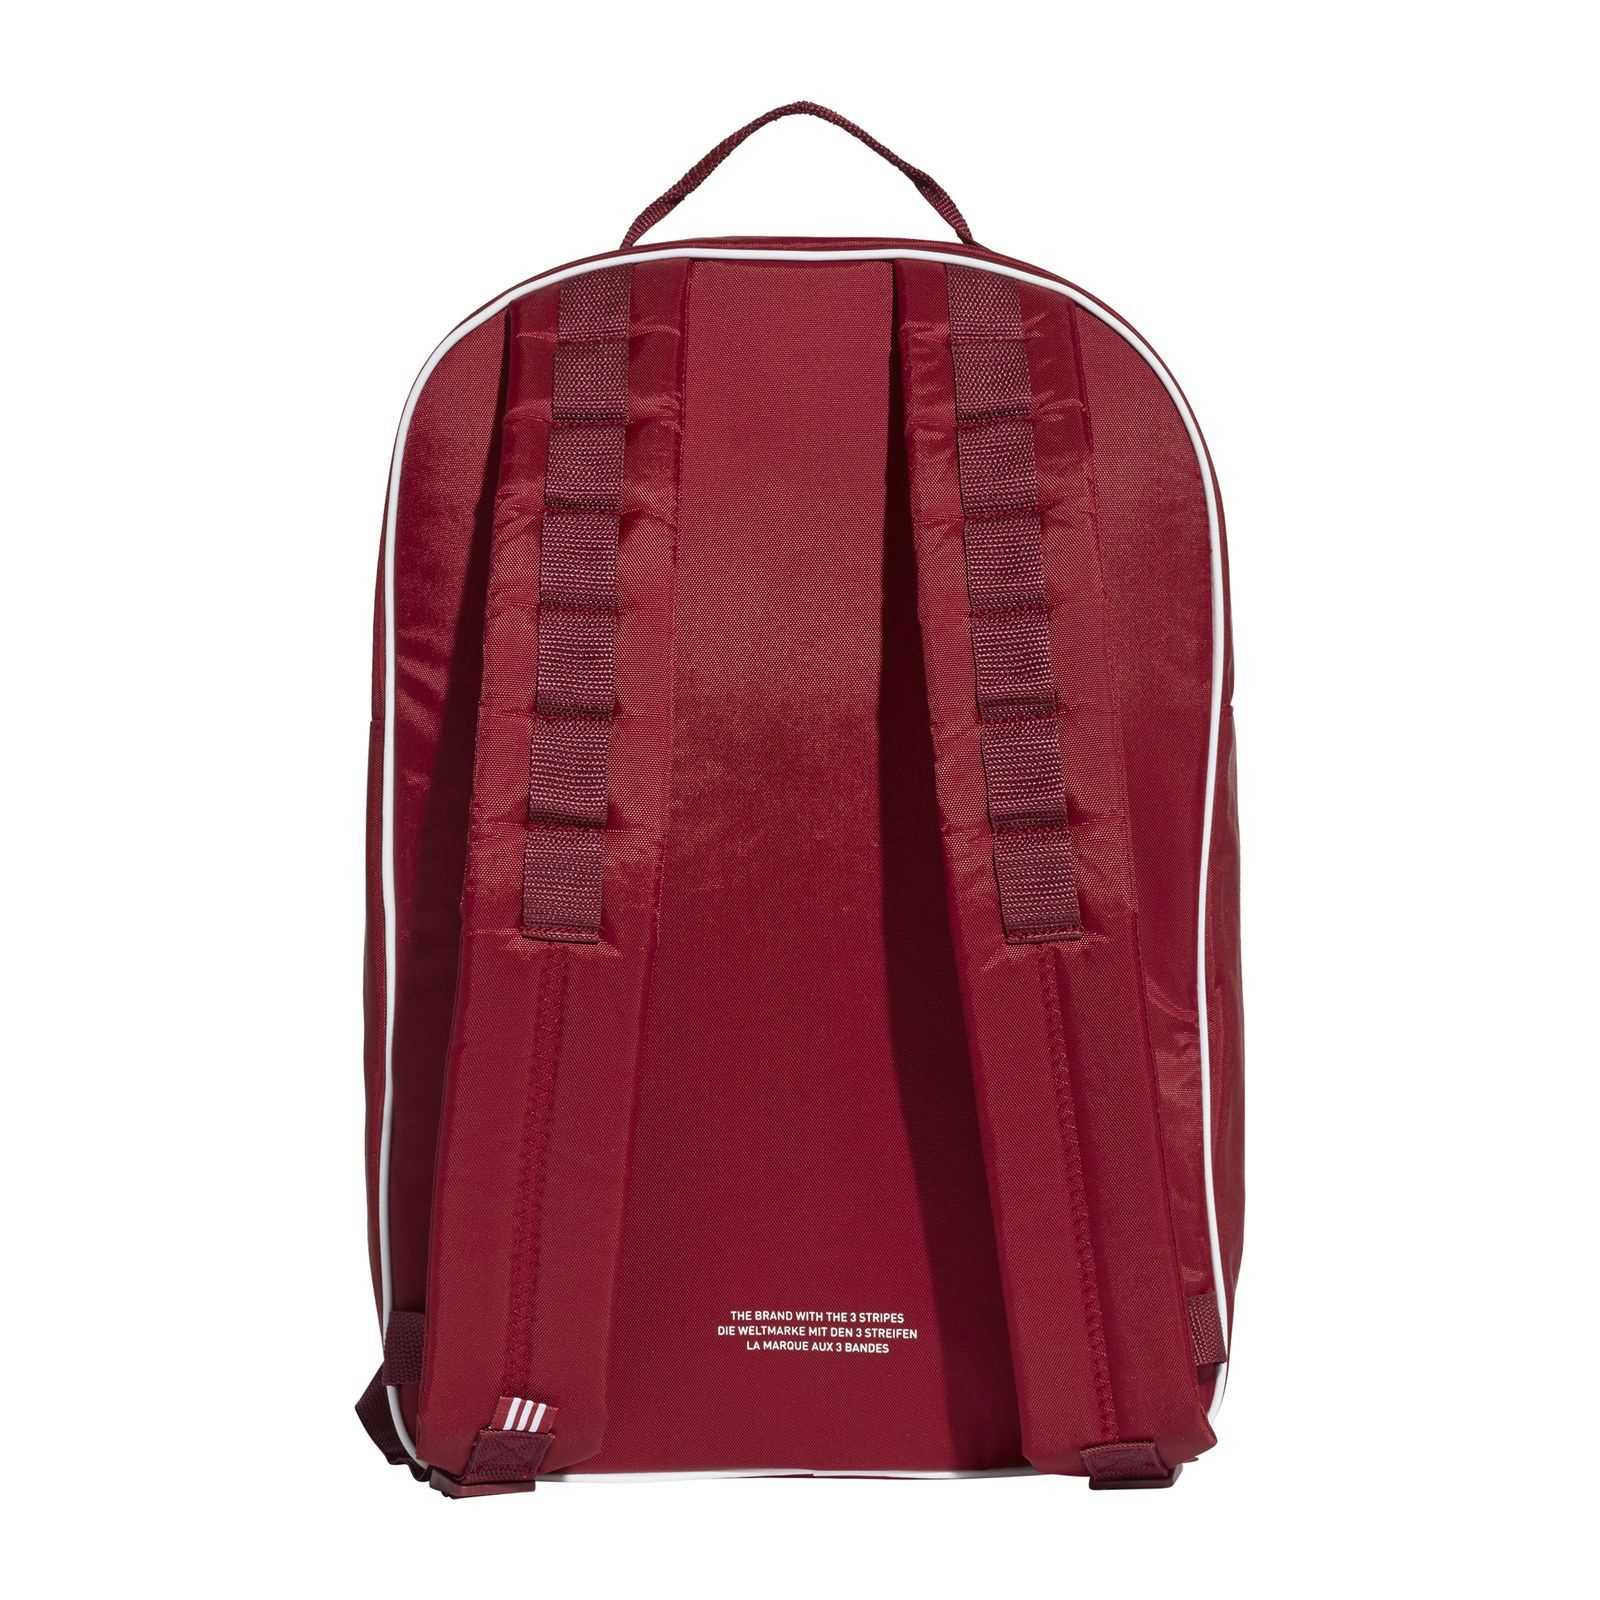 Sac Brandalley Adidas Dos Originals À Bordeaux 0SaSqO5w